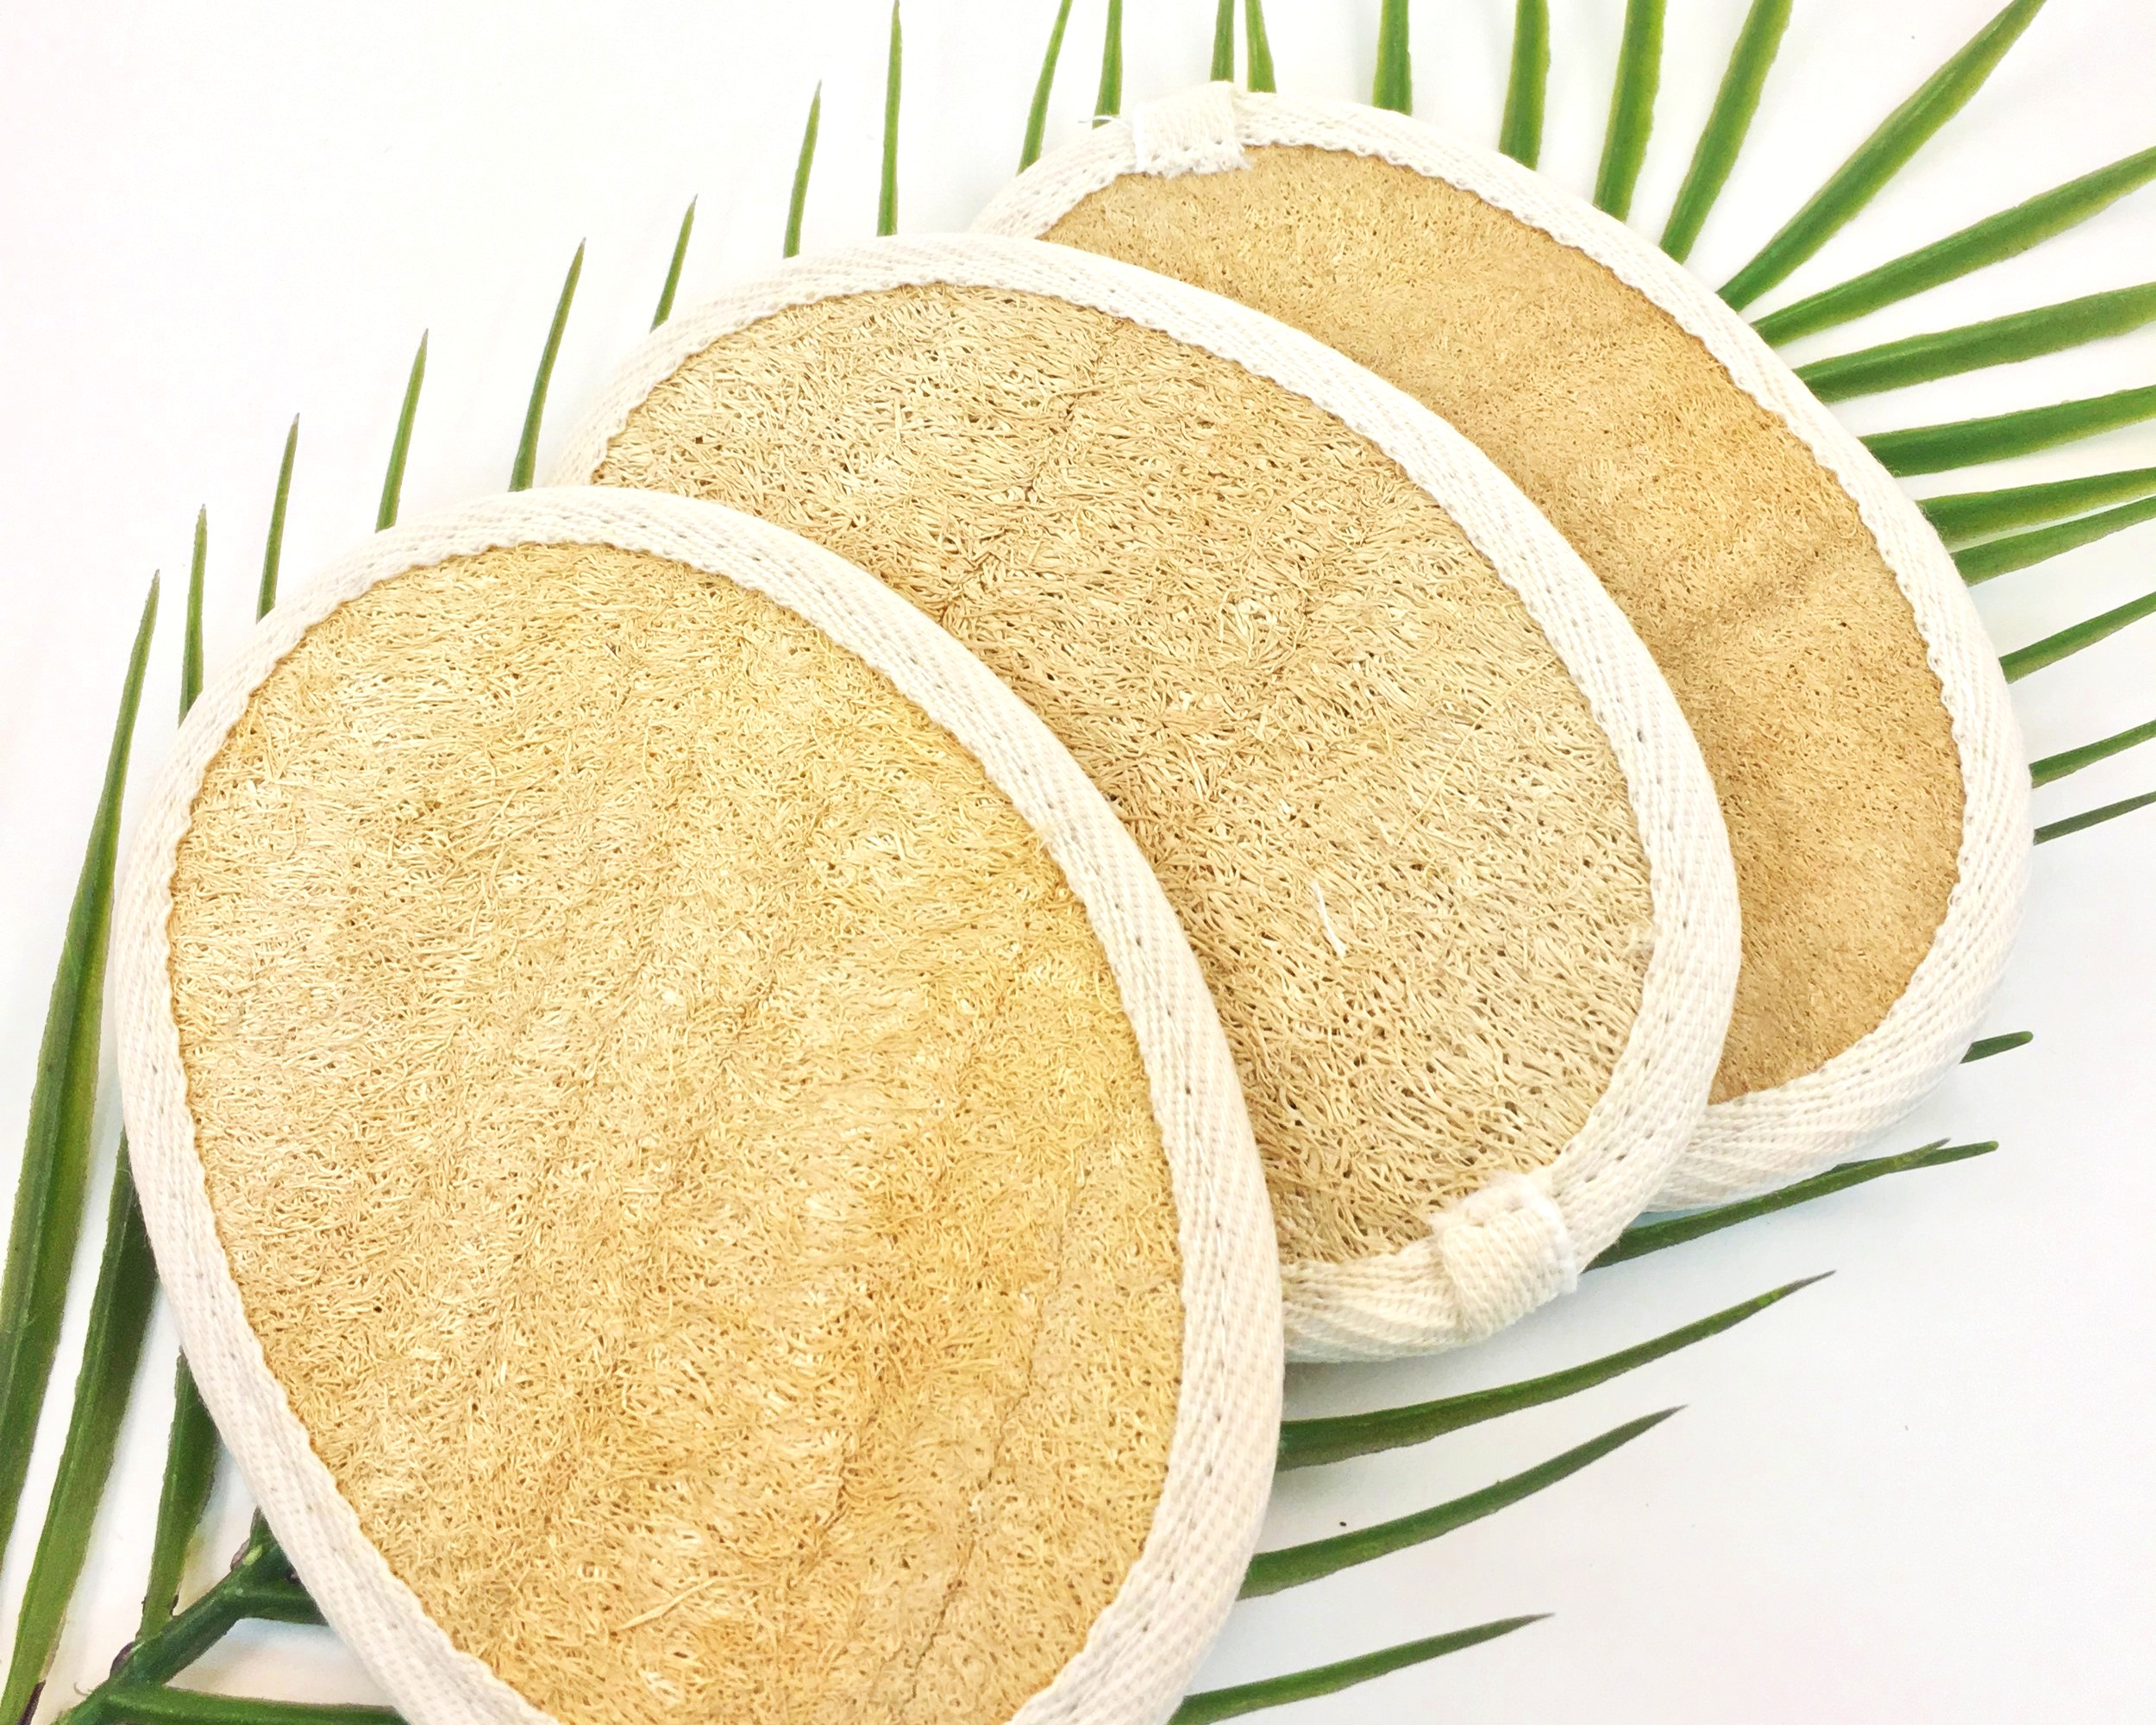 - Made from the Loofah Fruit Fibers